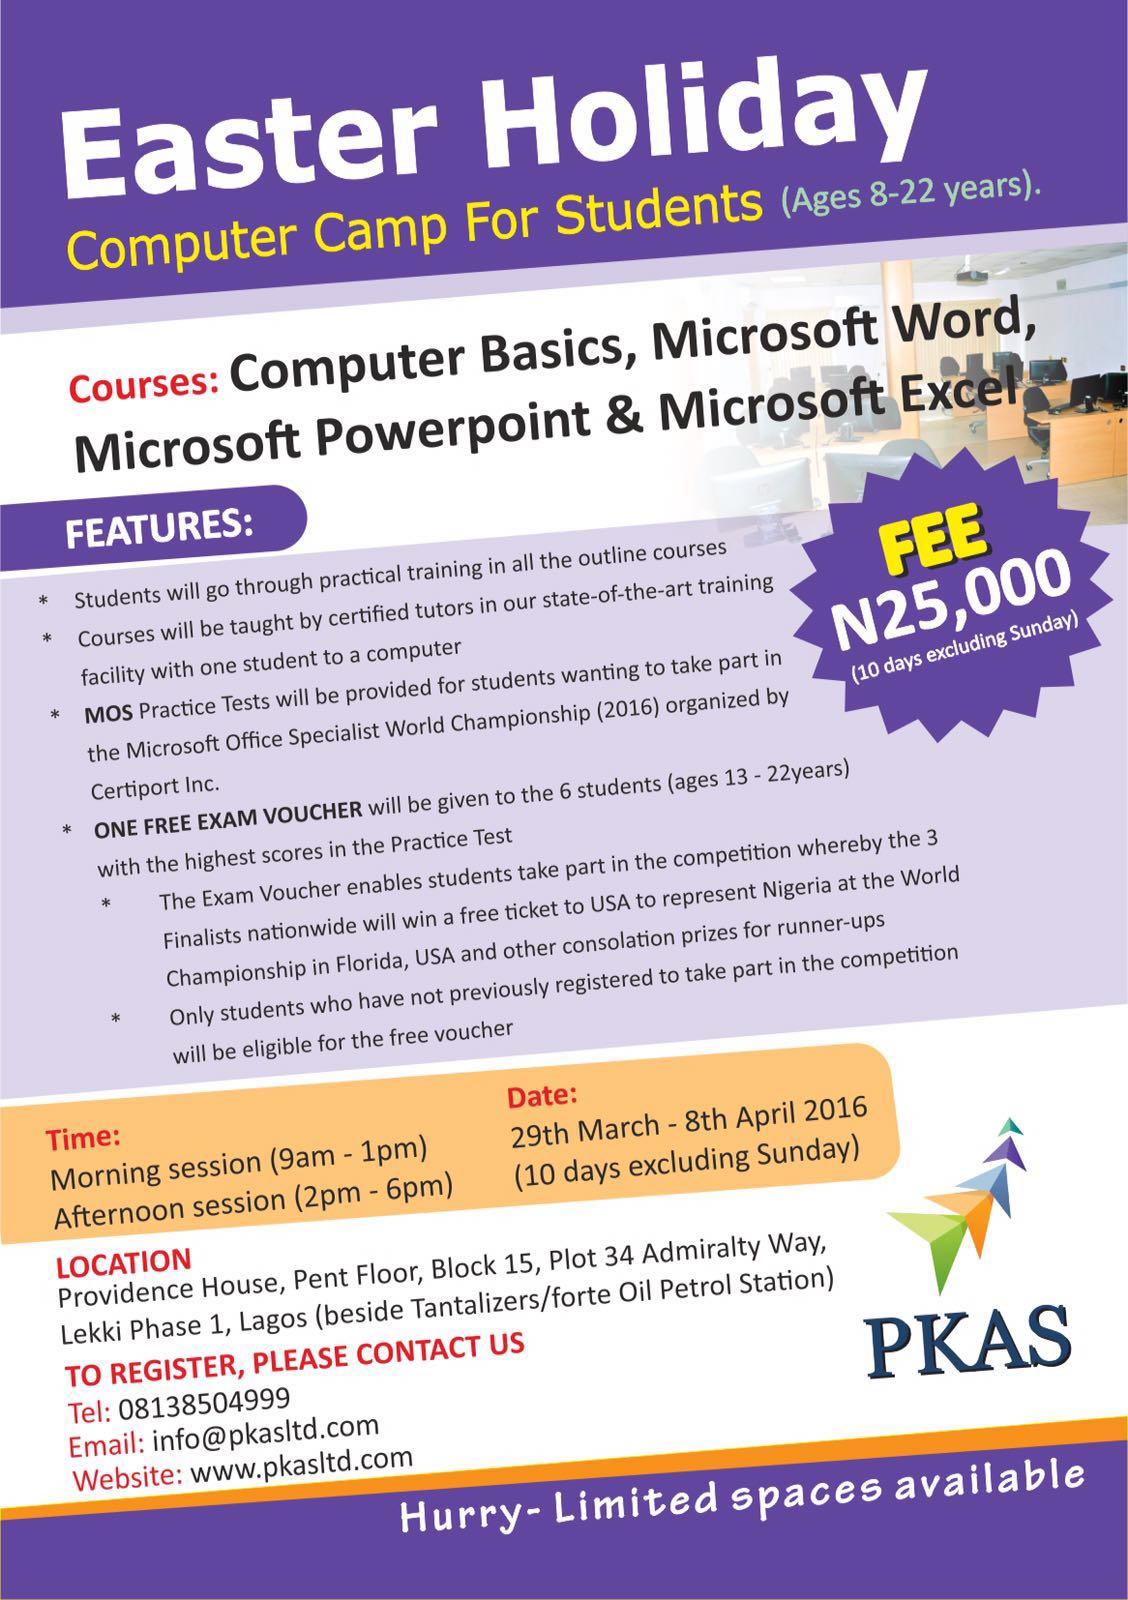 Get a fun training in microsoft office suite at computer camp for pks ltd easter camp xflitez Choice Image